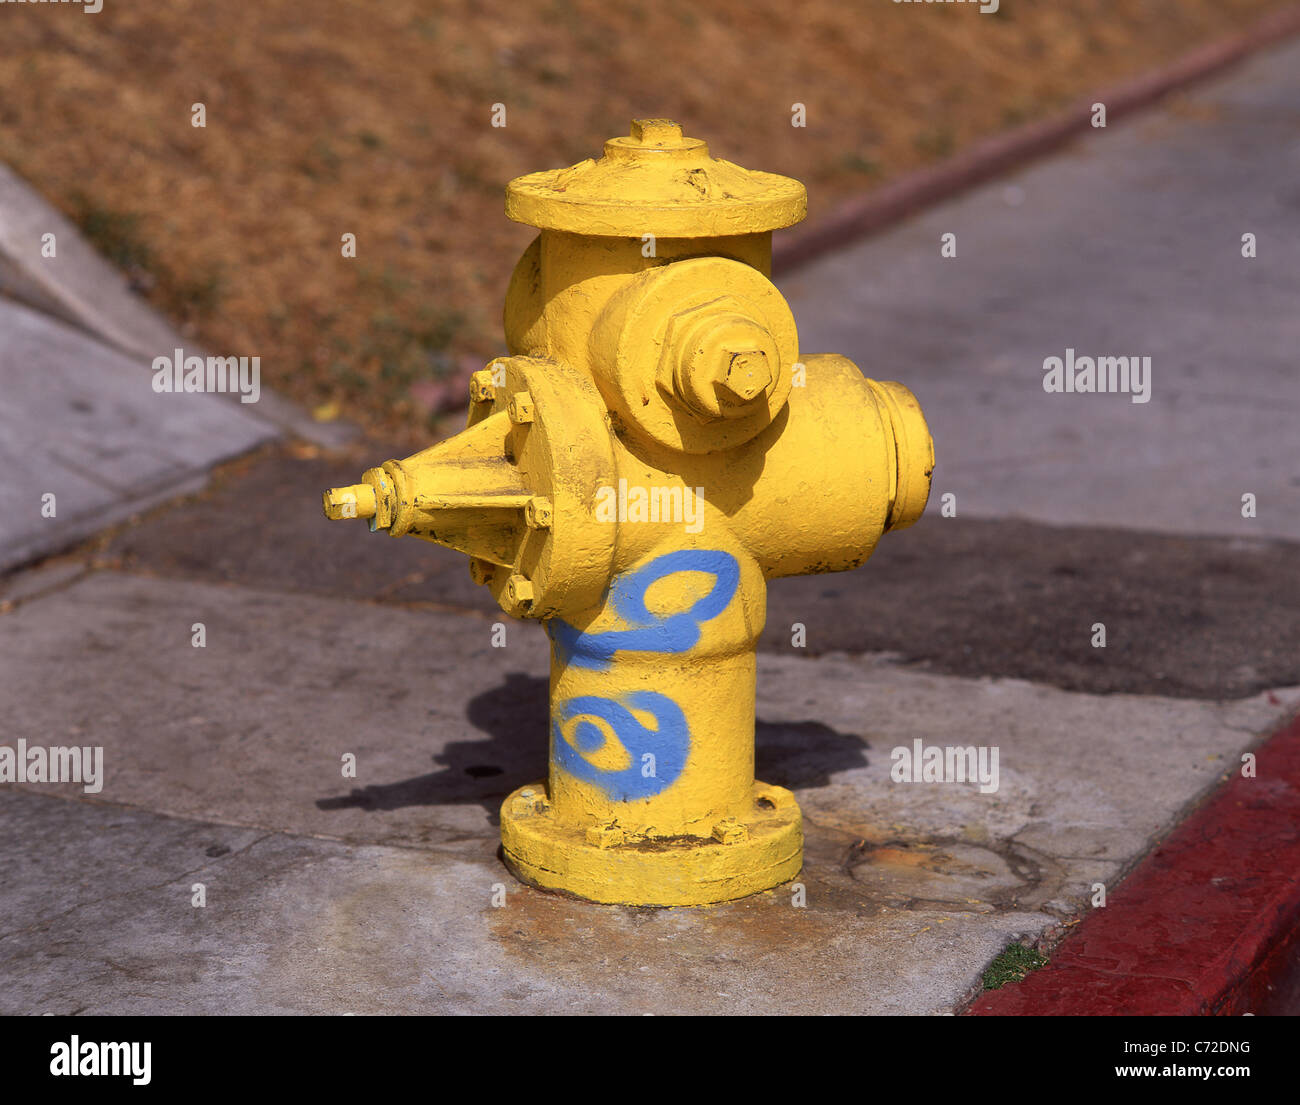 Yellow fire hydrant on sidewalk, San Francisco, California, United States of America - Stock Image